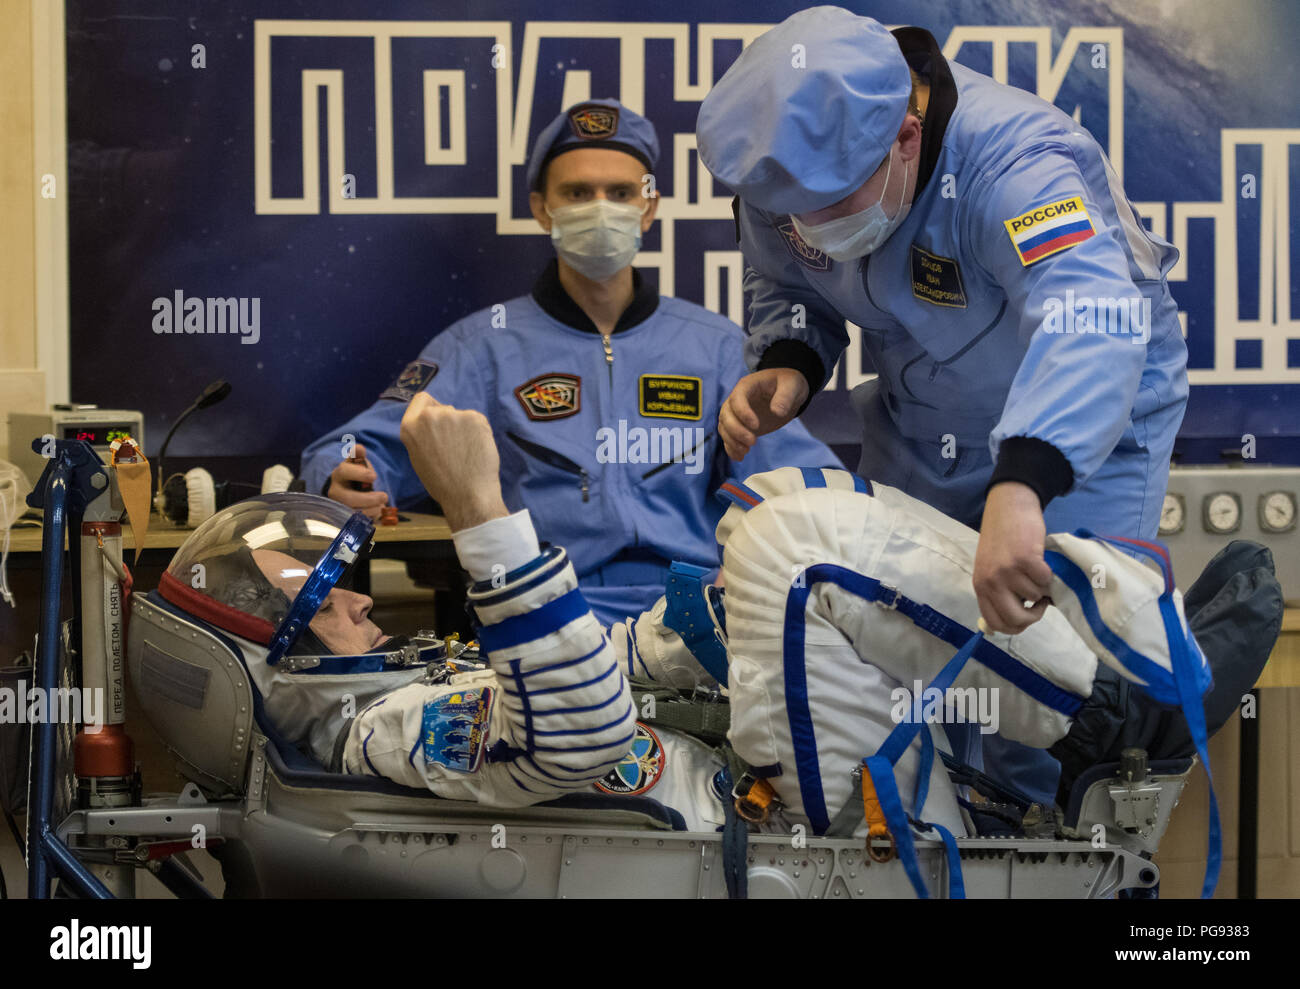 Expedition 55 flight engineer Ricky Arnold of NASA prepares to have his Russian Sokol suit pressure checked in preparation for launch aboard the Soyuz MS-08 spacecraft, Wednesday, March 21, 2018 at the Baikonur Cosmodrome in Kazakhstan. Arnold, Soyuz Commander Oleg Artemyev of Roscosmos, and flight engineer Drew Feustel of NASA launched aboard the Soyuz MS-08 spacecraft at 1:44 p.m. Eastern time (11:44 p.m. Baikonur time) on March 21 to begin their journey to the International Space Station. - Stock Image